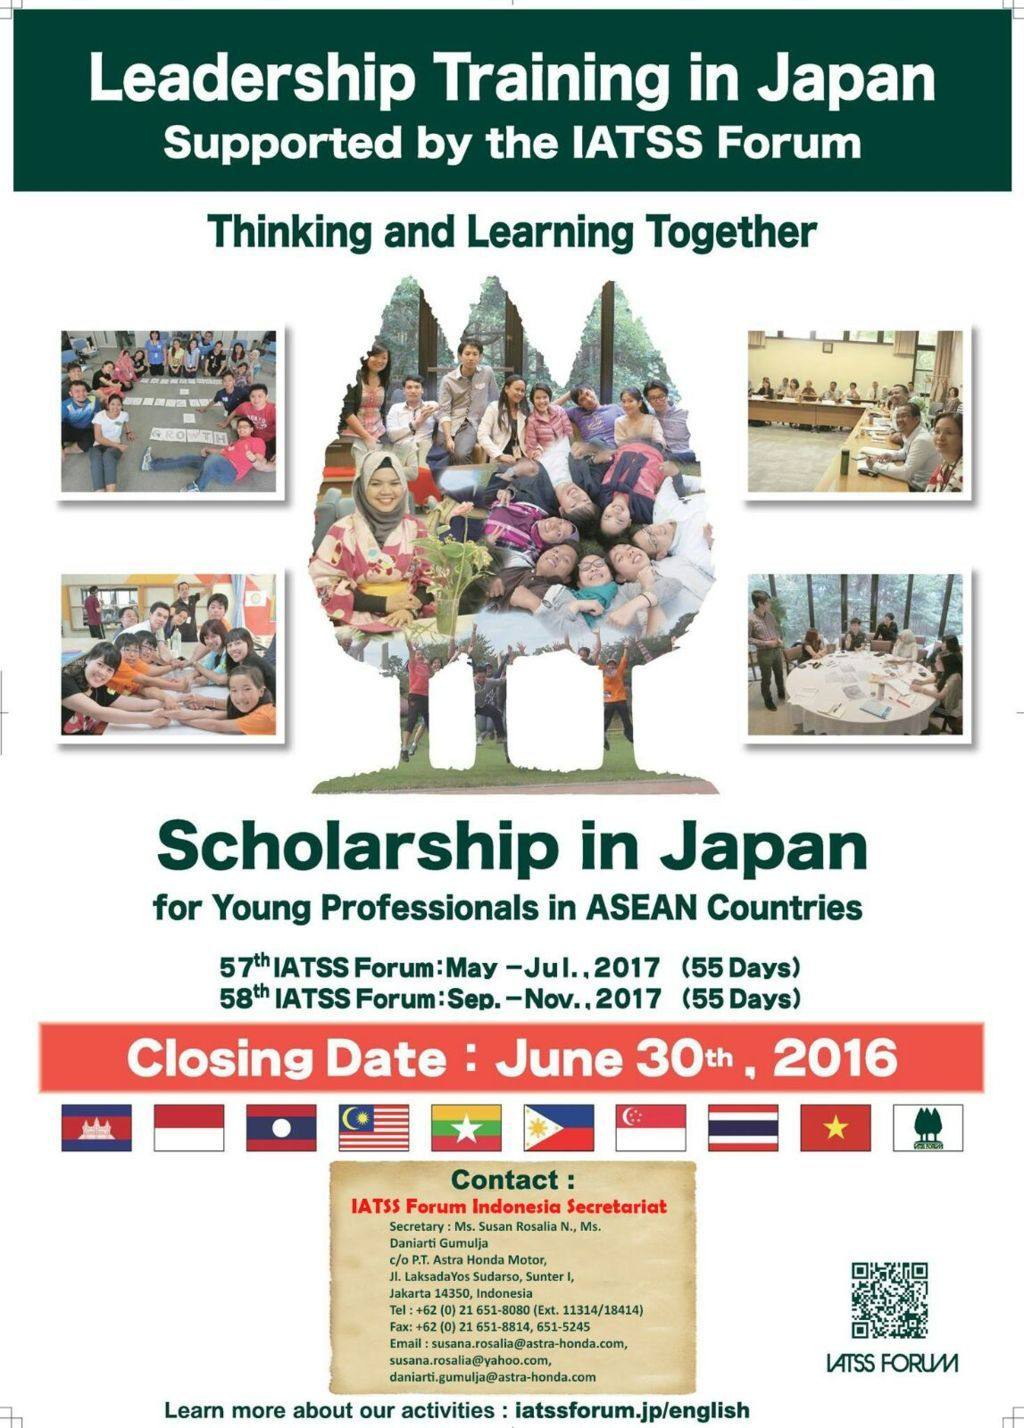 LEADERSHIP TRAINING IN JAPAN : Supported By The IATSS Forum